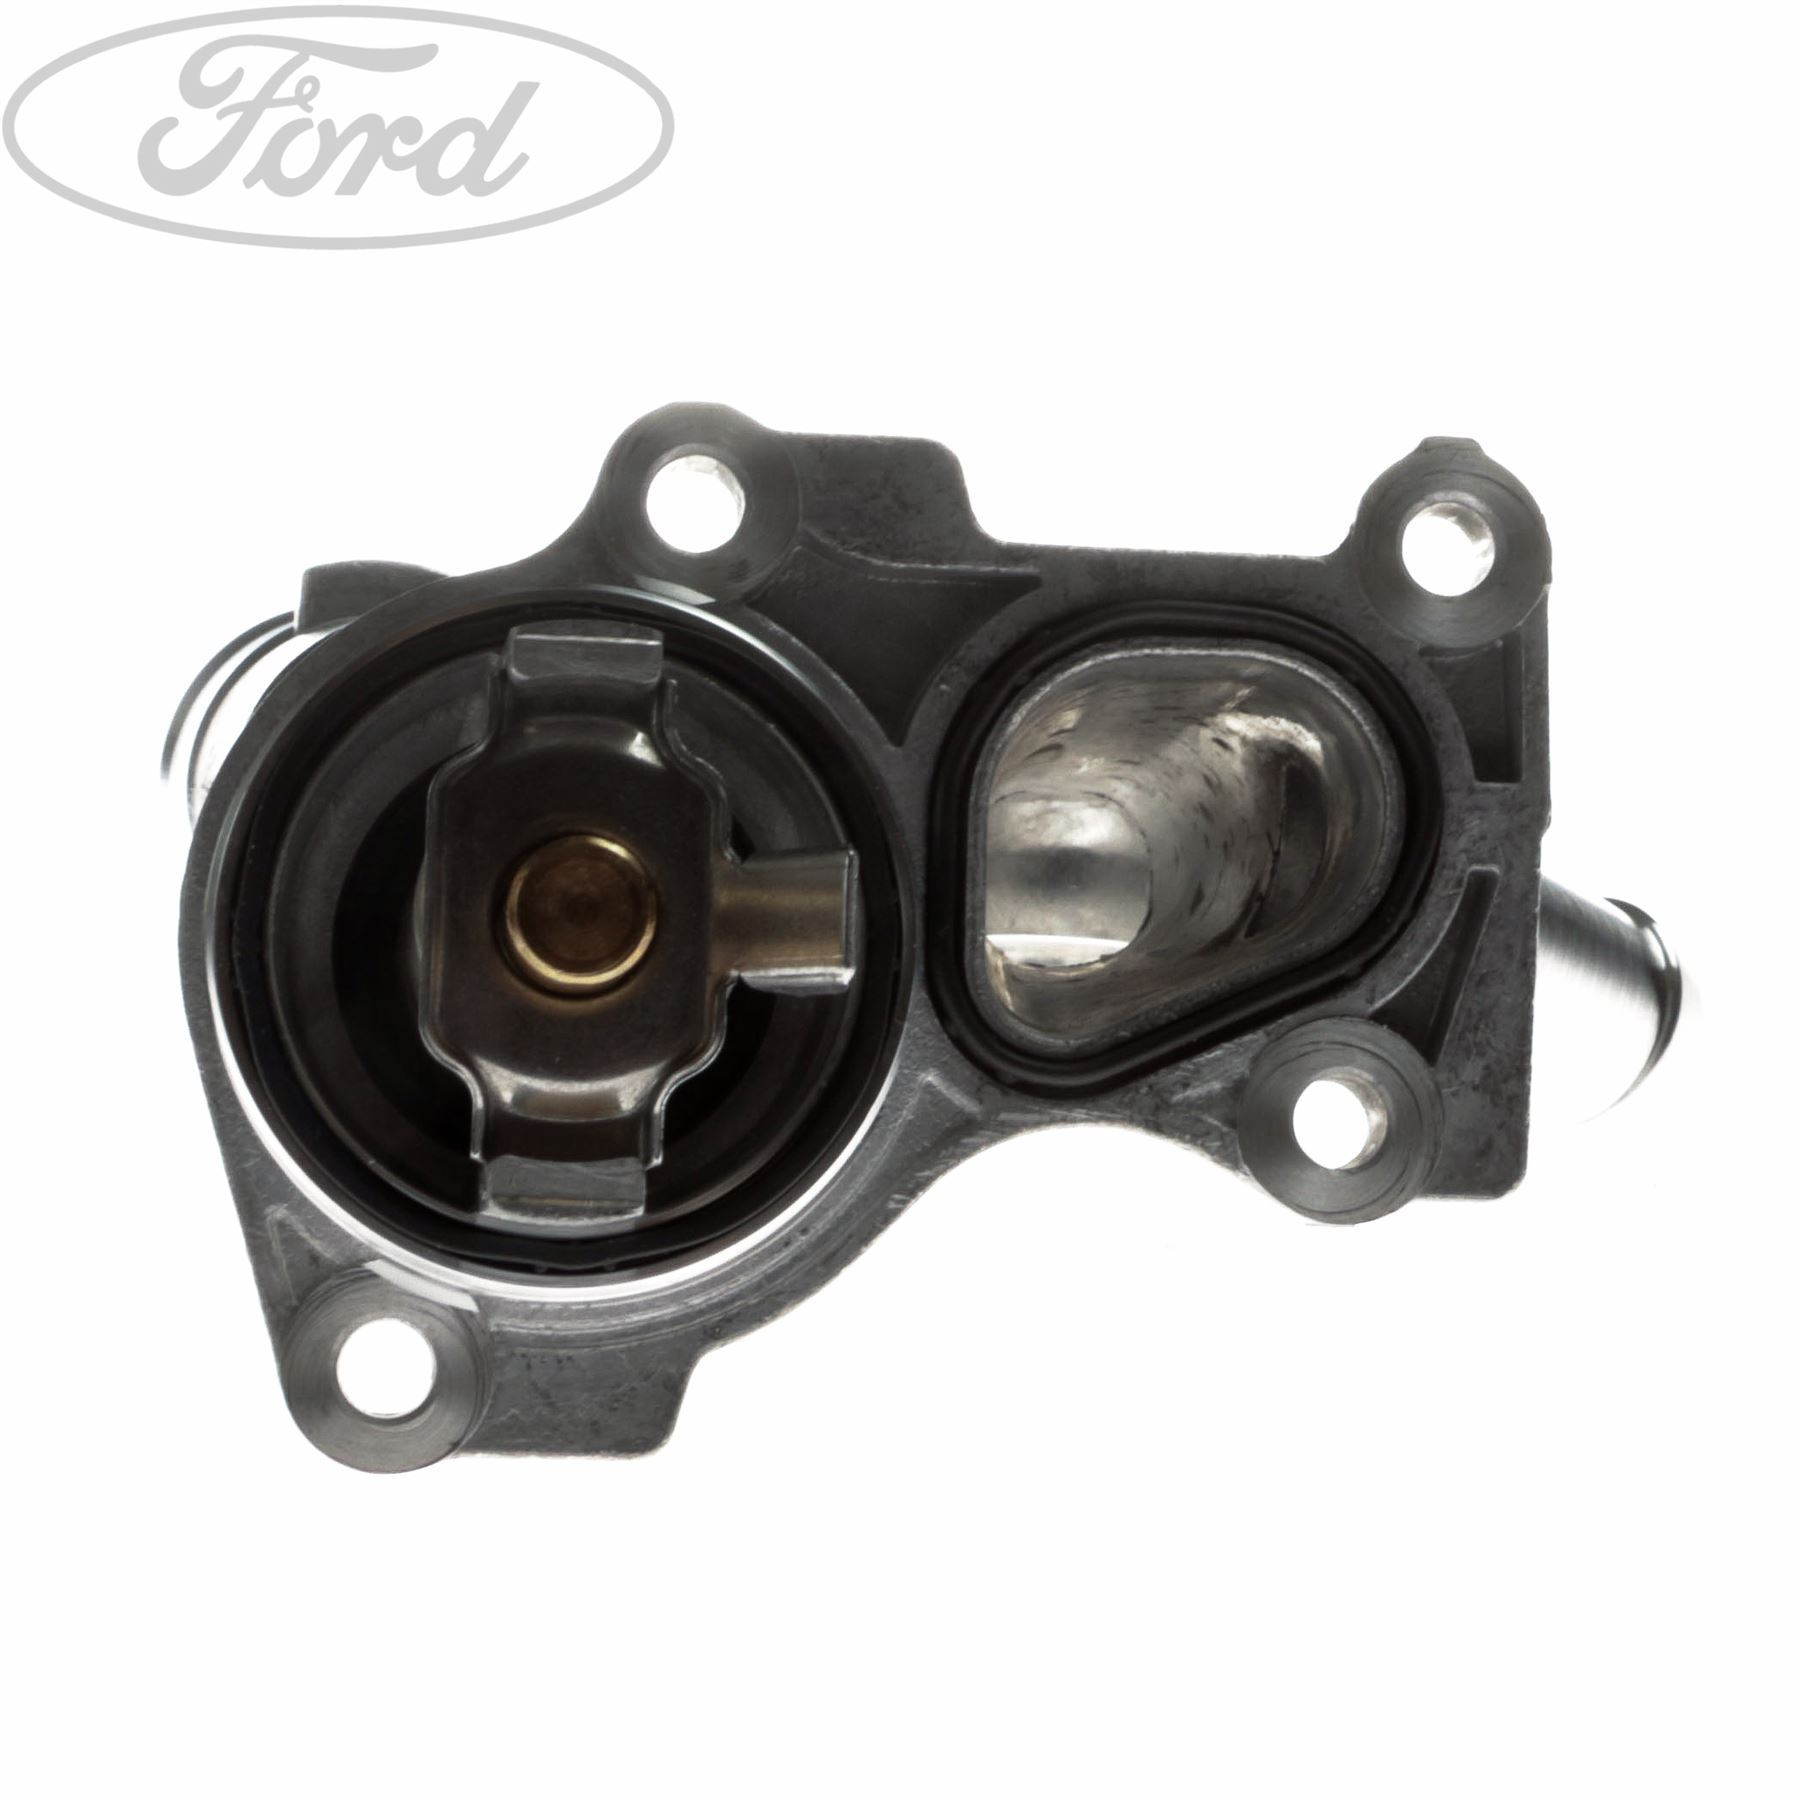 Genuine Ford Engine Coolant Thermostat 1767974 Ebay